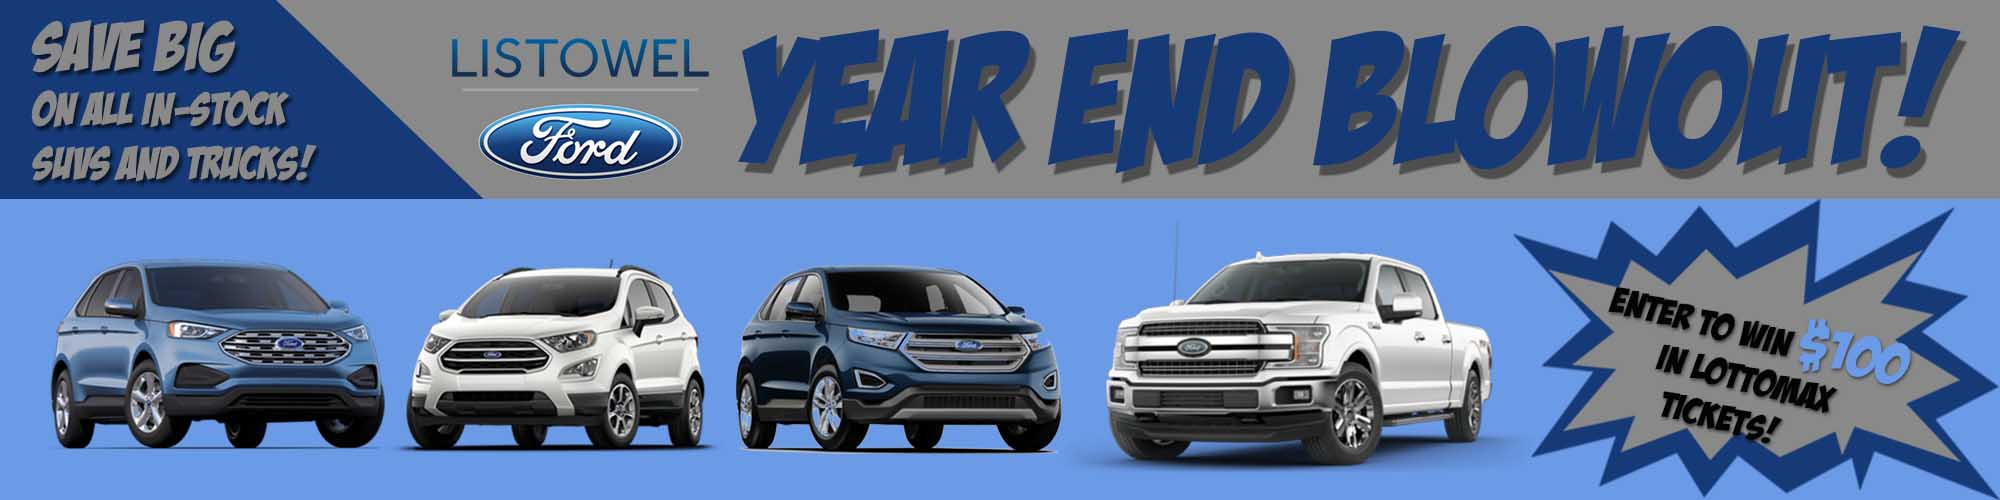 Listowel Ford End of Year Blowout